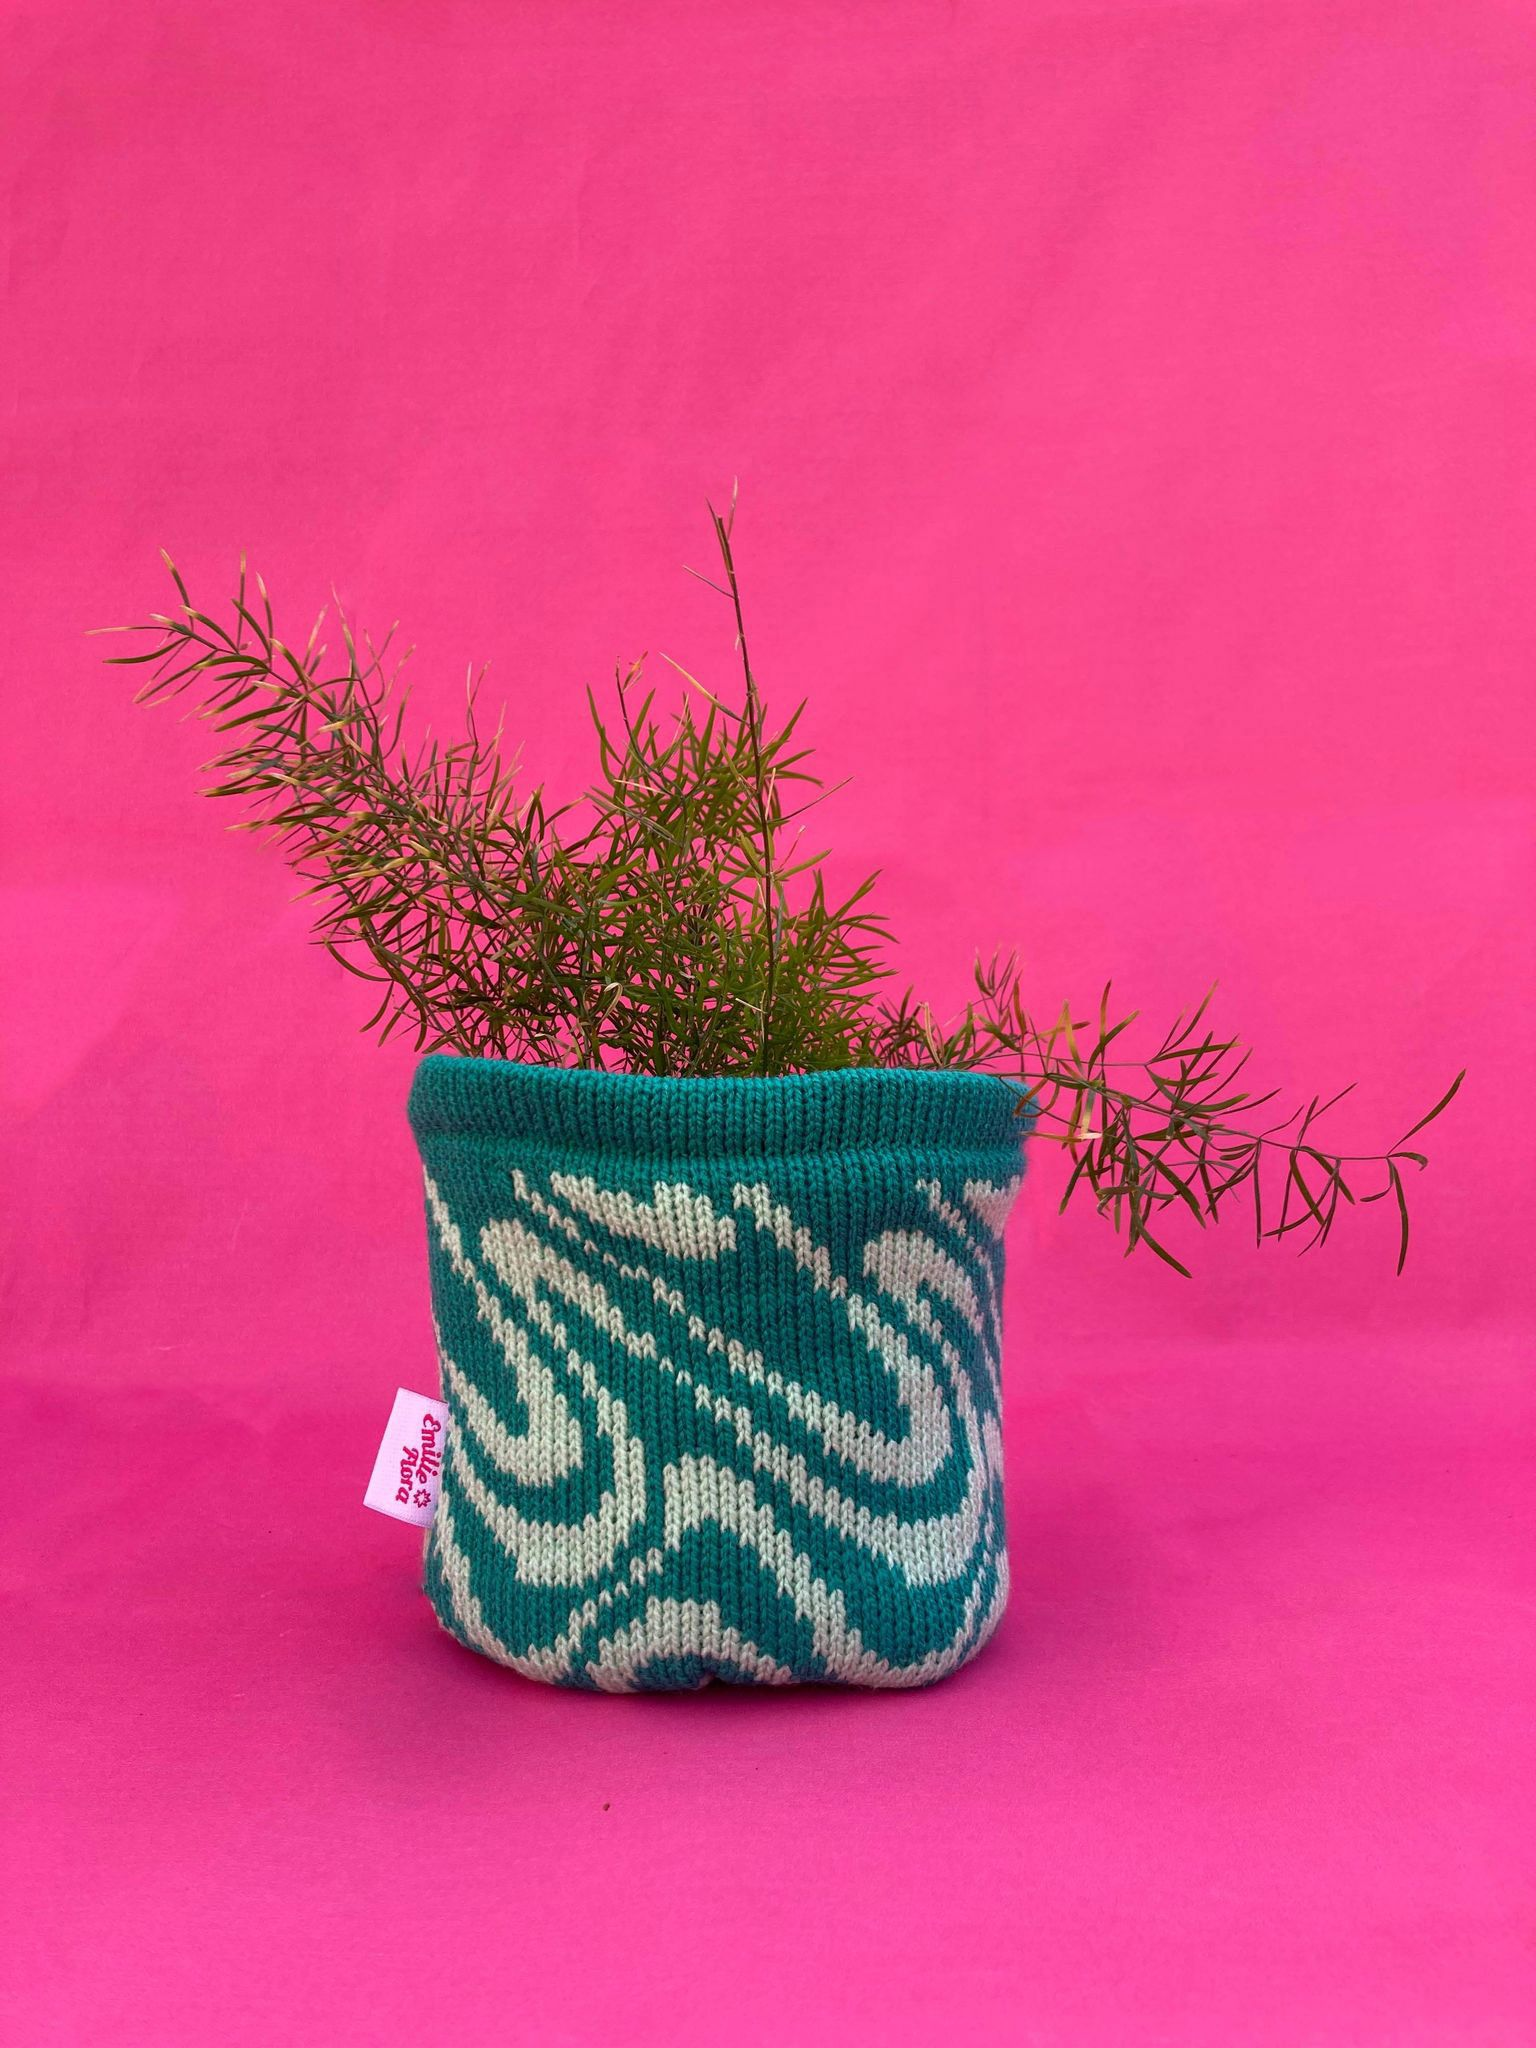 Medium Swirly Pot Cover - Teal and Mint